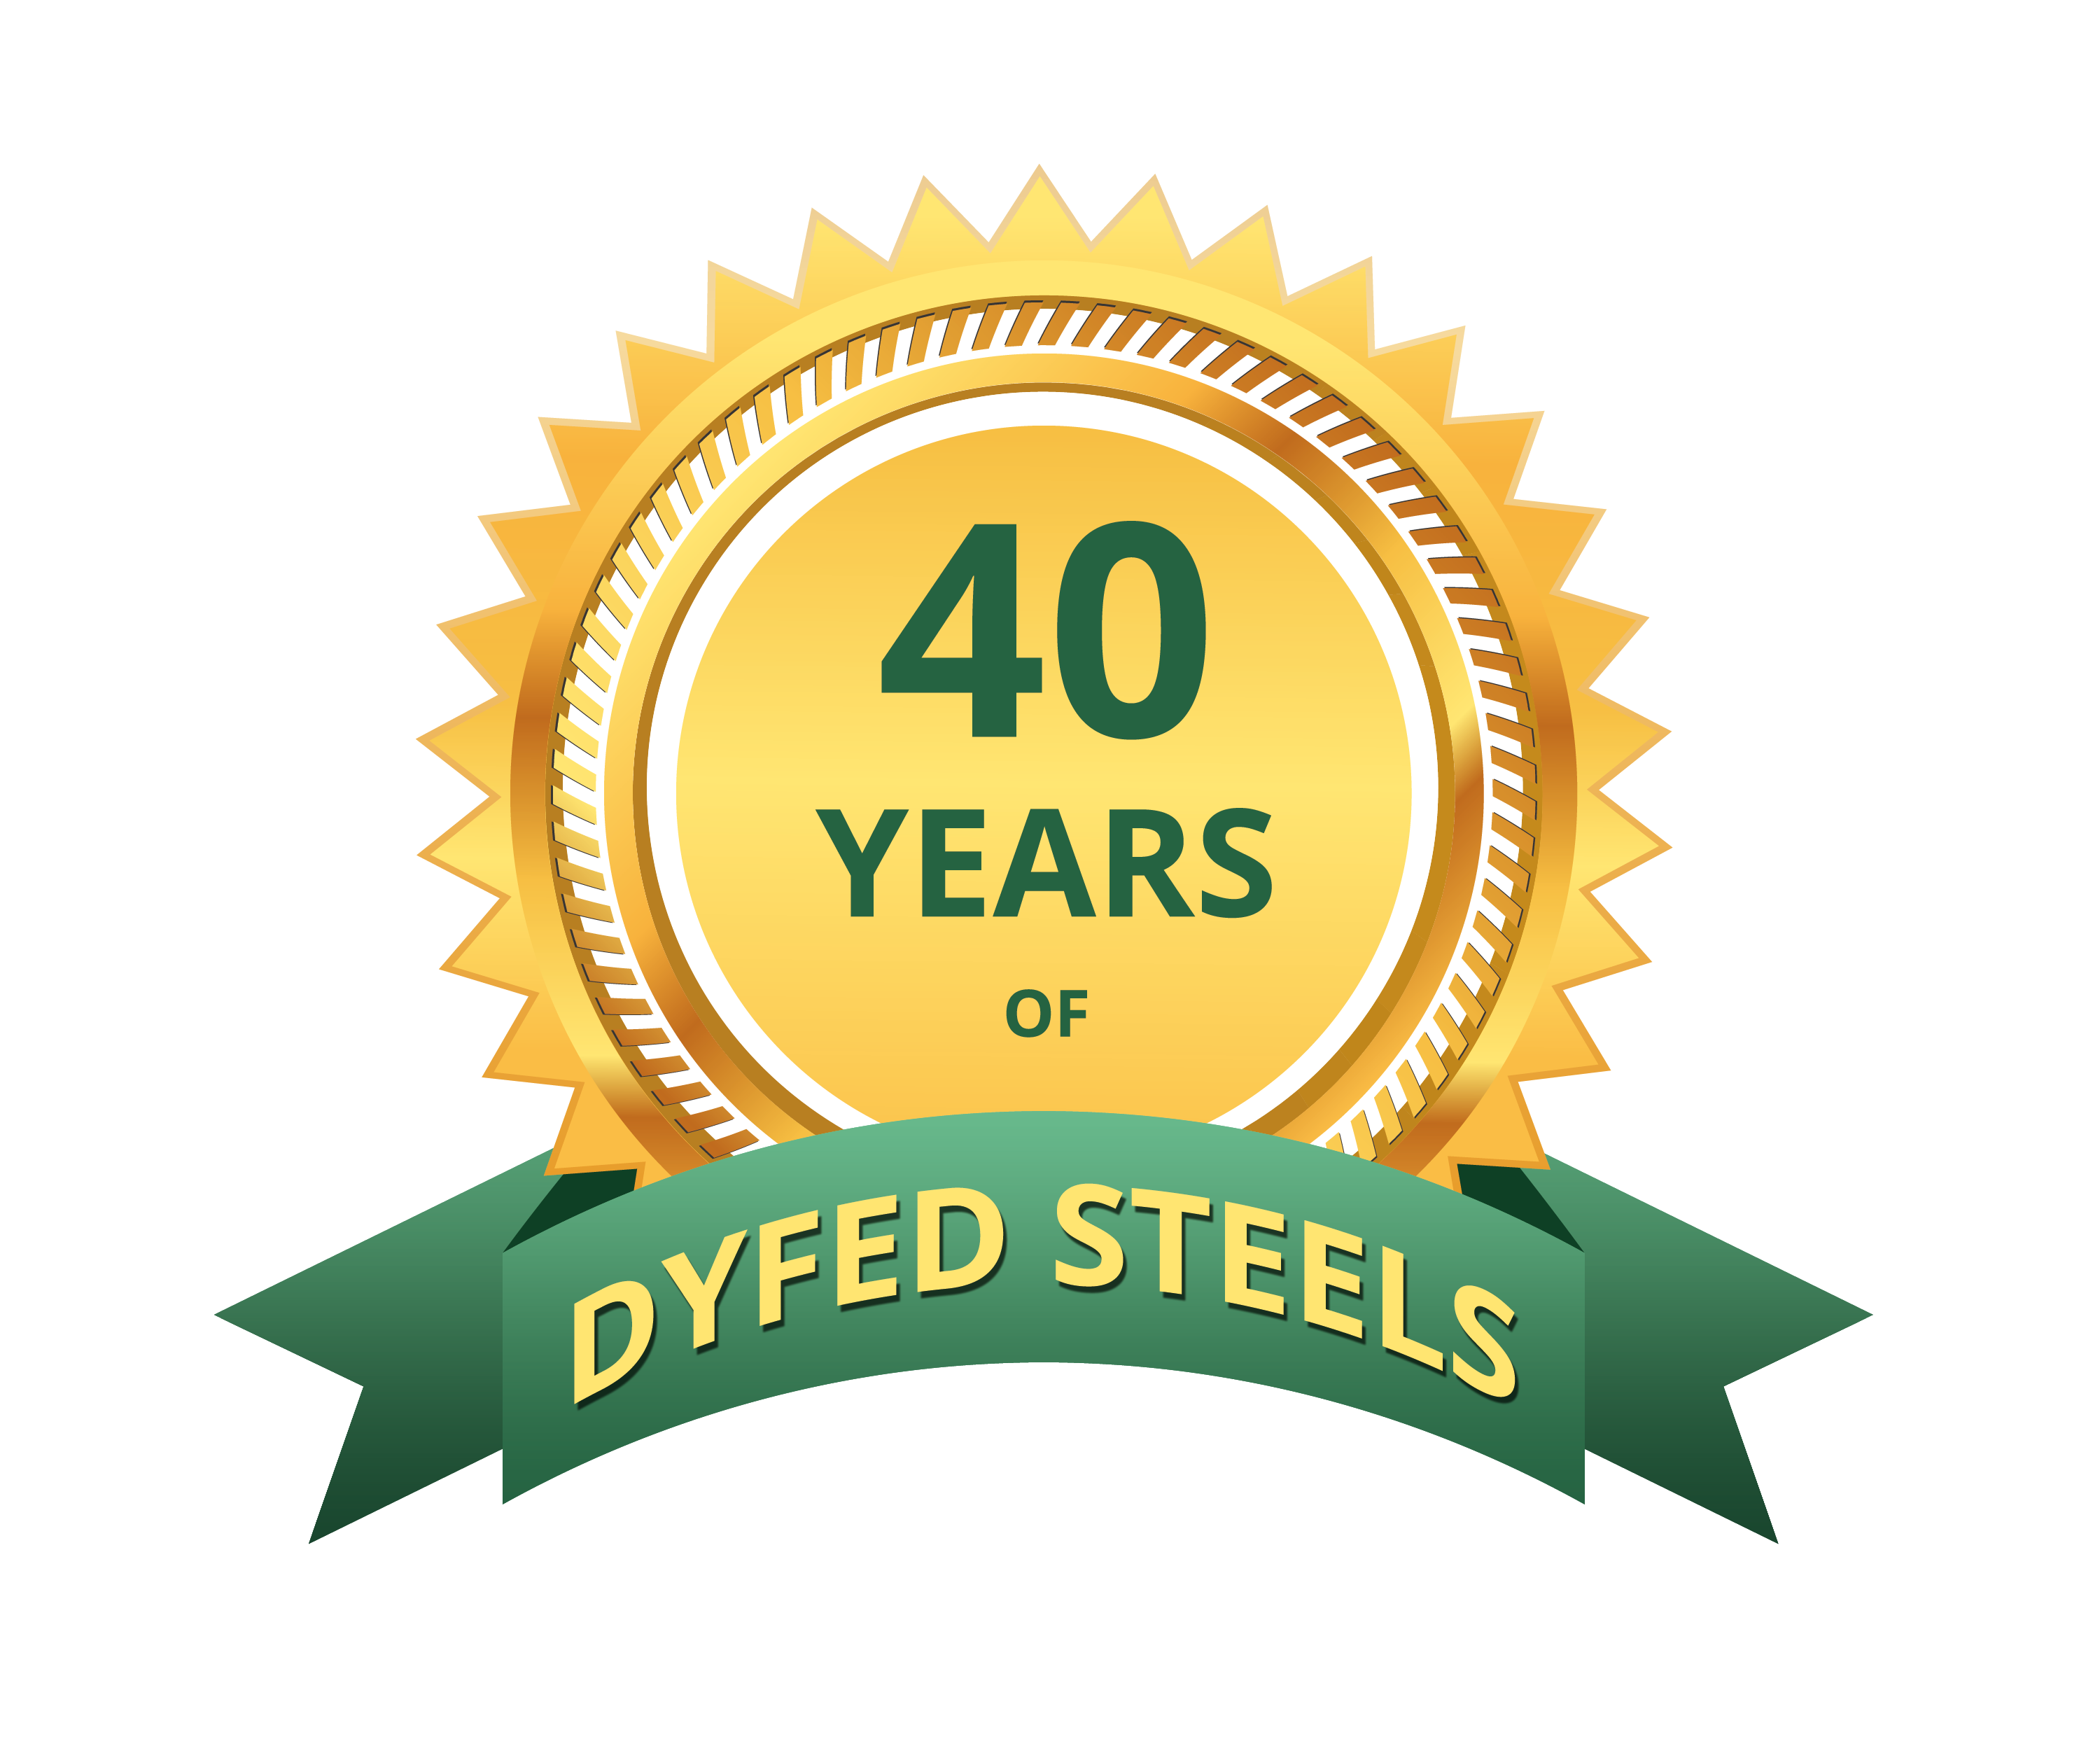 40 years Dyfed Steels